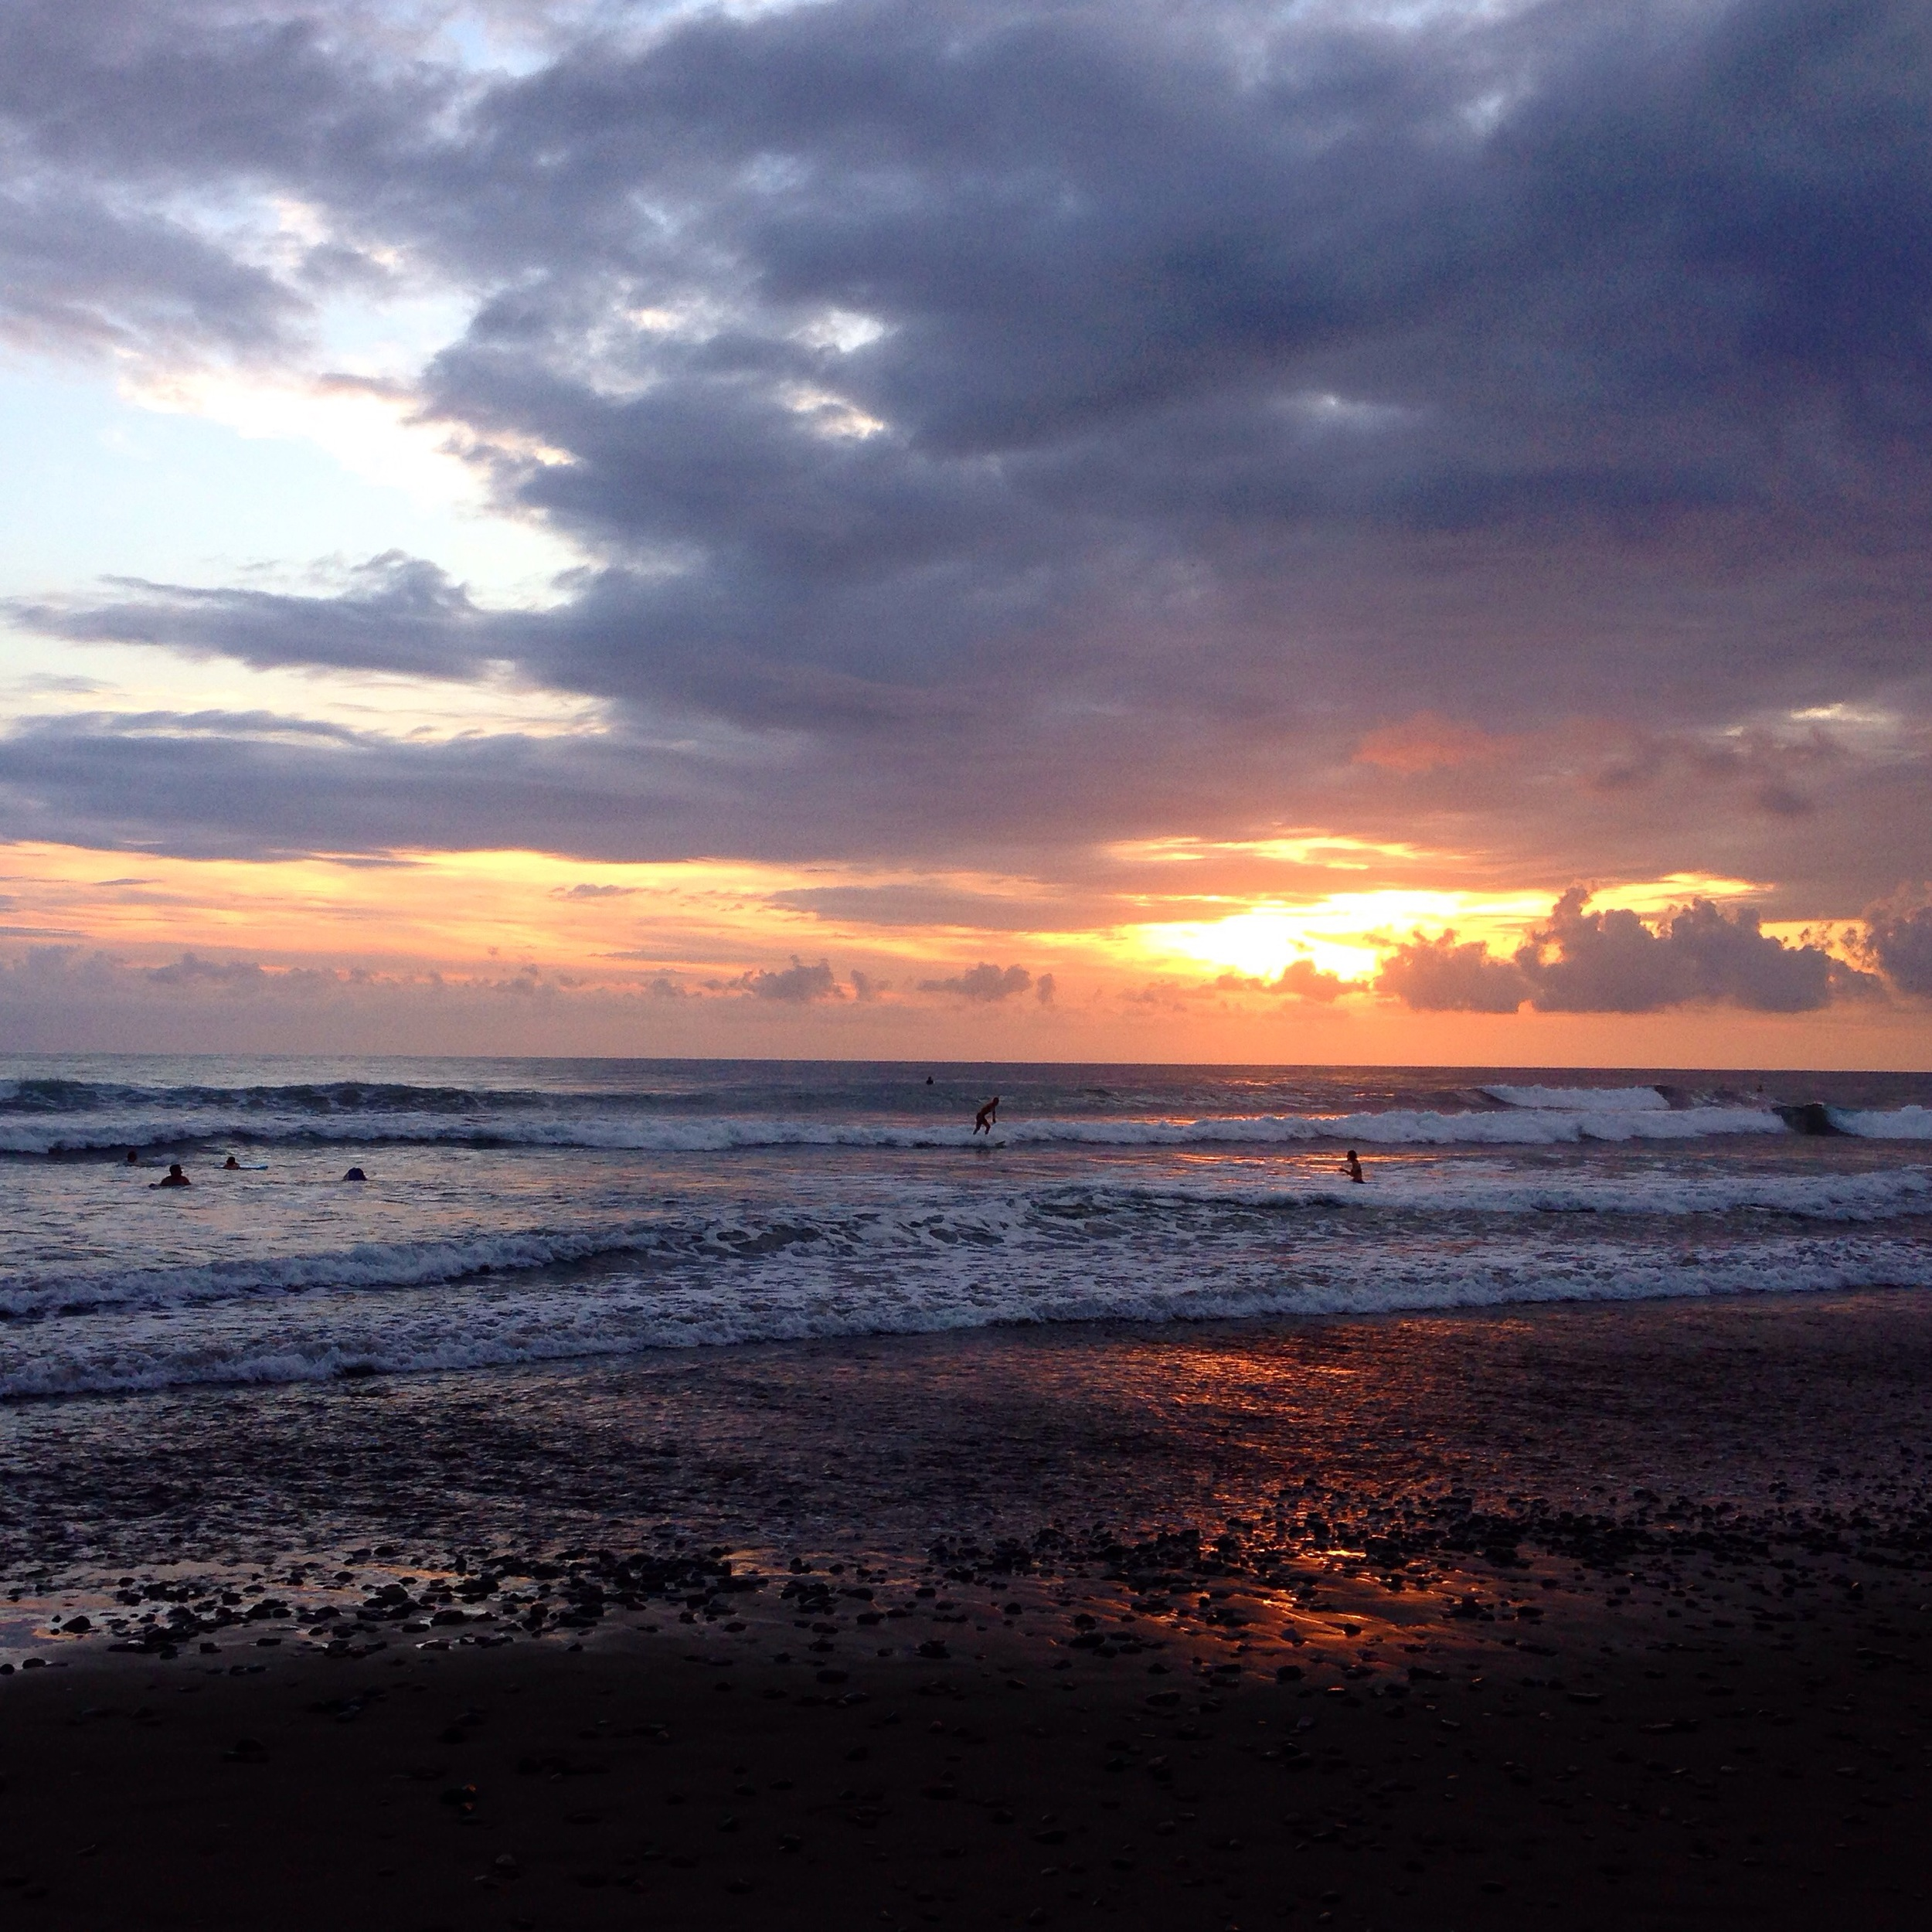 Watching surfers race out at sunset is one of my favorite past times.